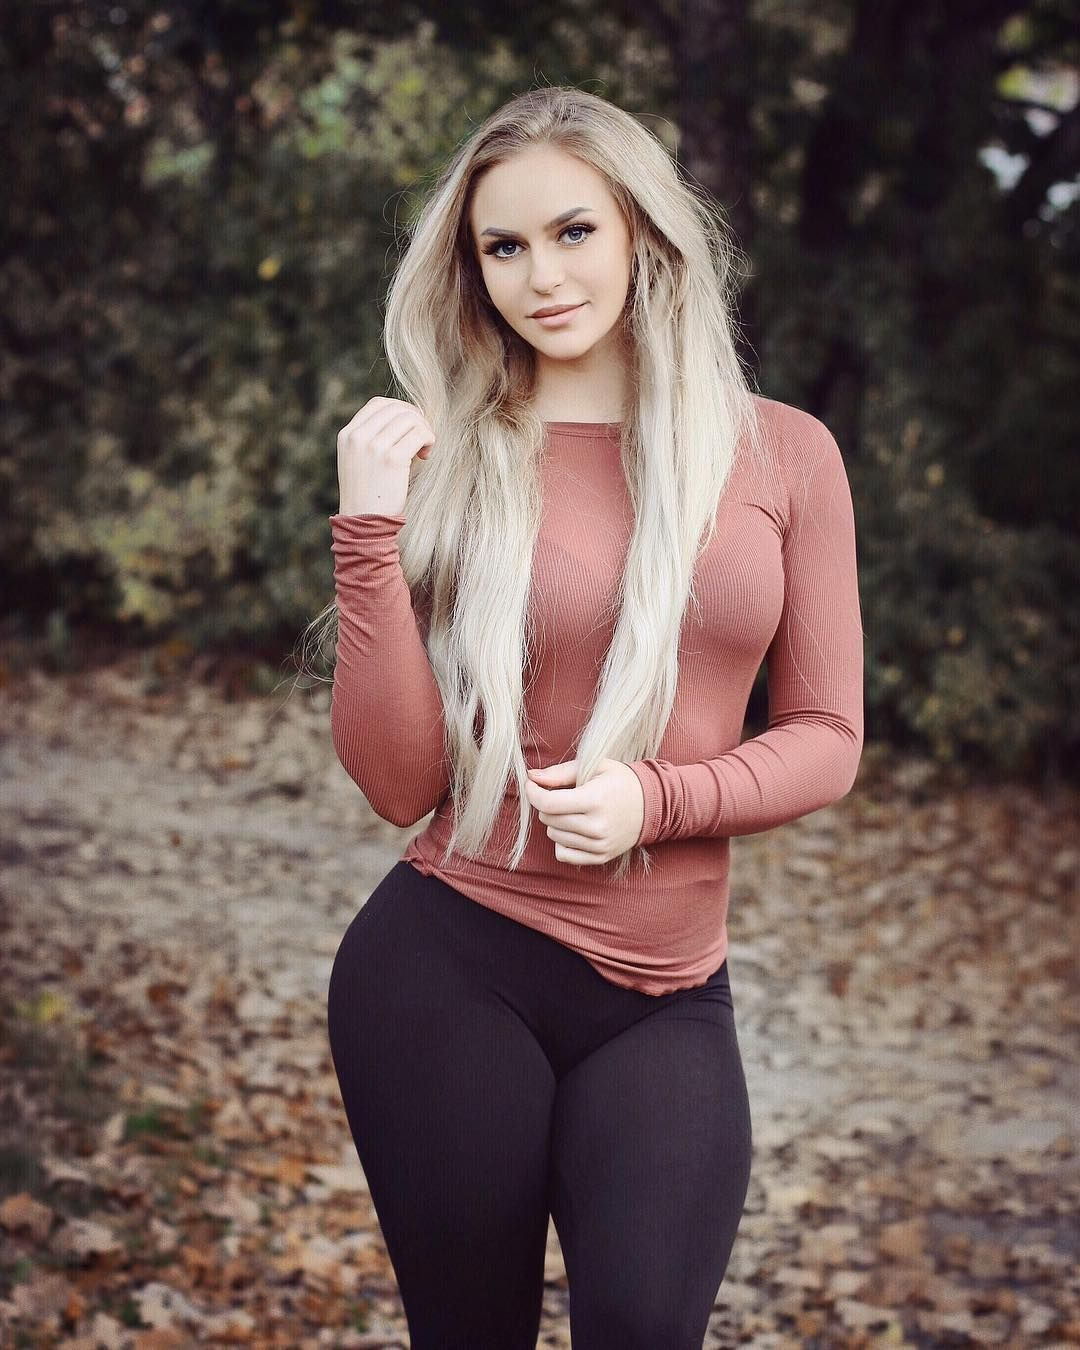 Pin on Beautyful Anna Nystrom